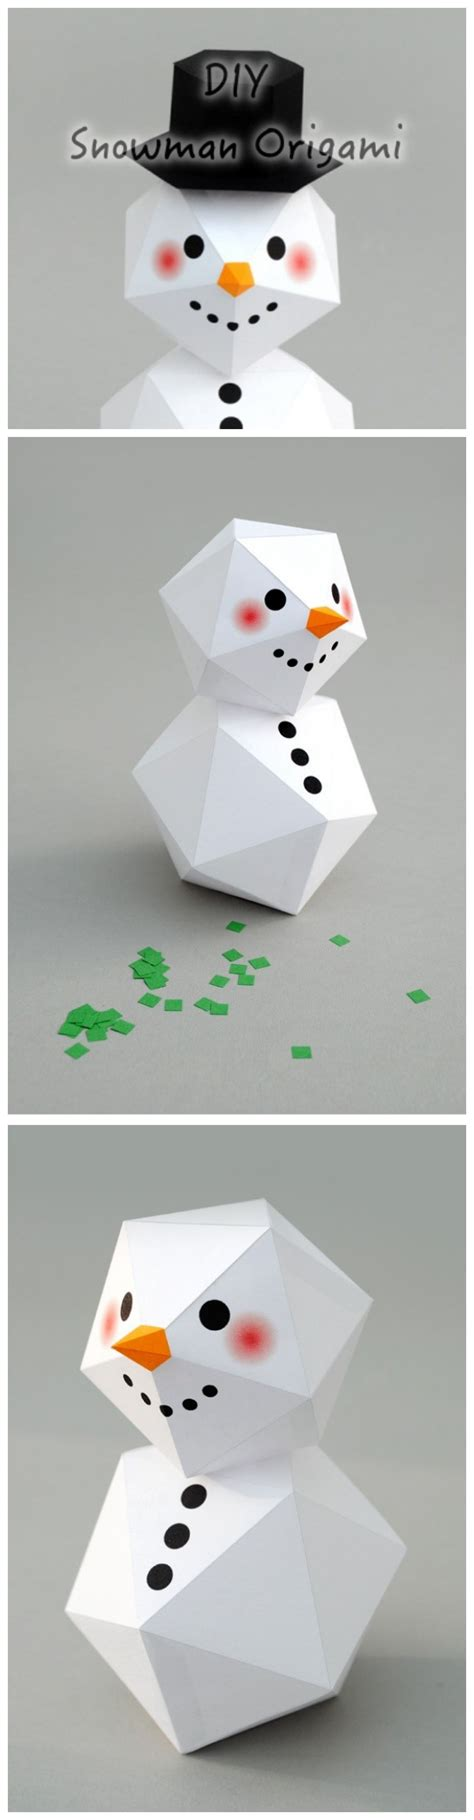 origami snowman how to make snowman origami diy step by step tutorial